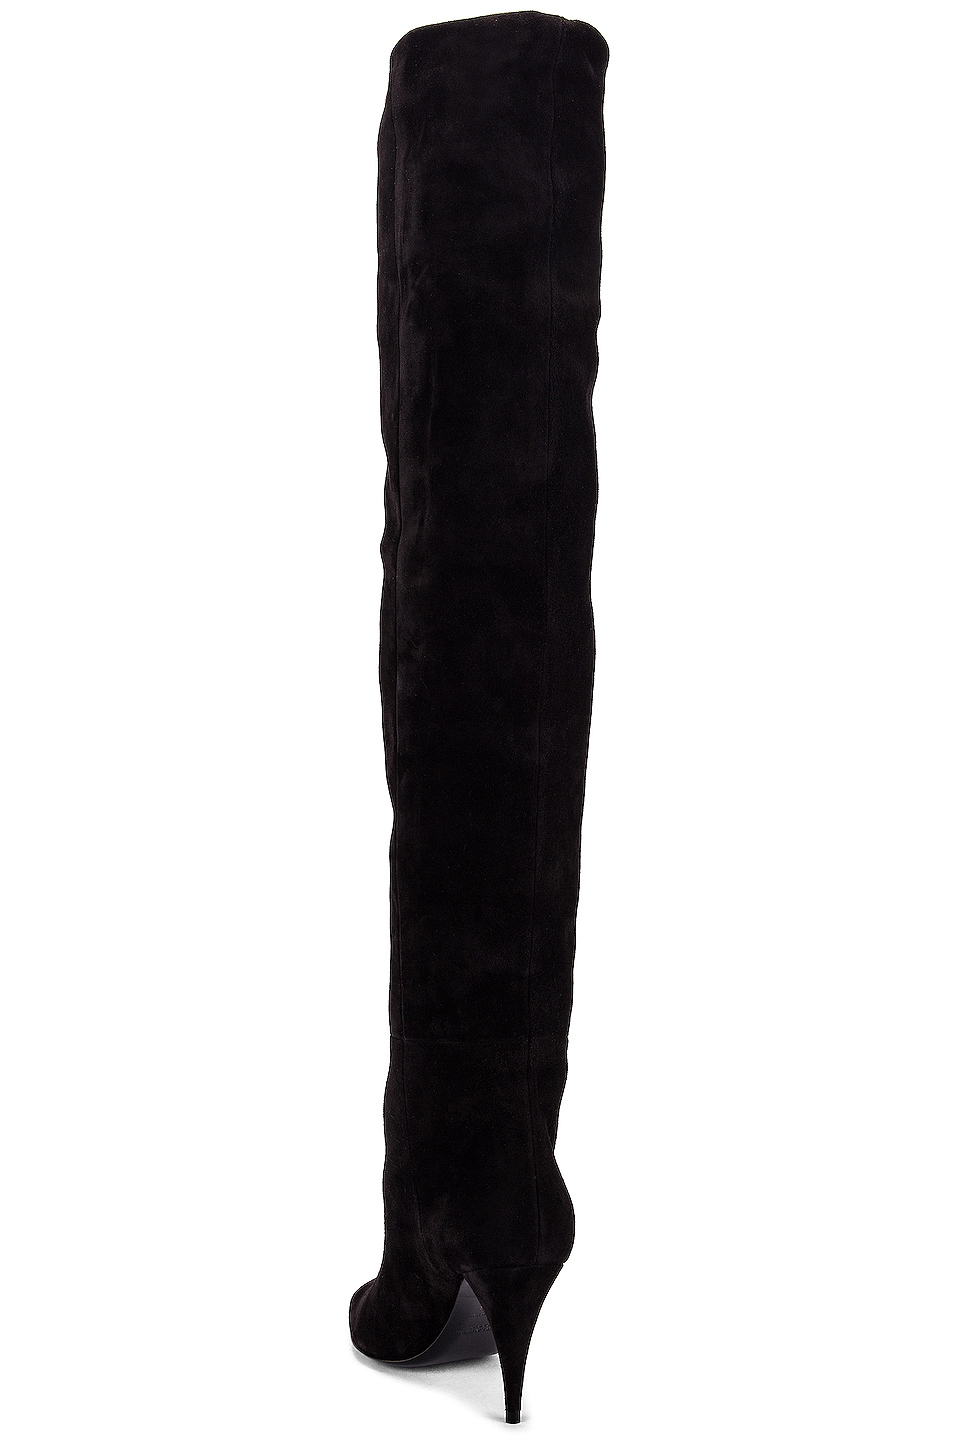 Image 3 of Saint Laurent Kiki Over the Knee Boots in Black